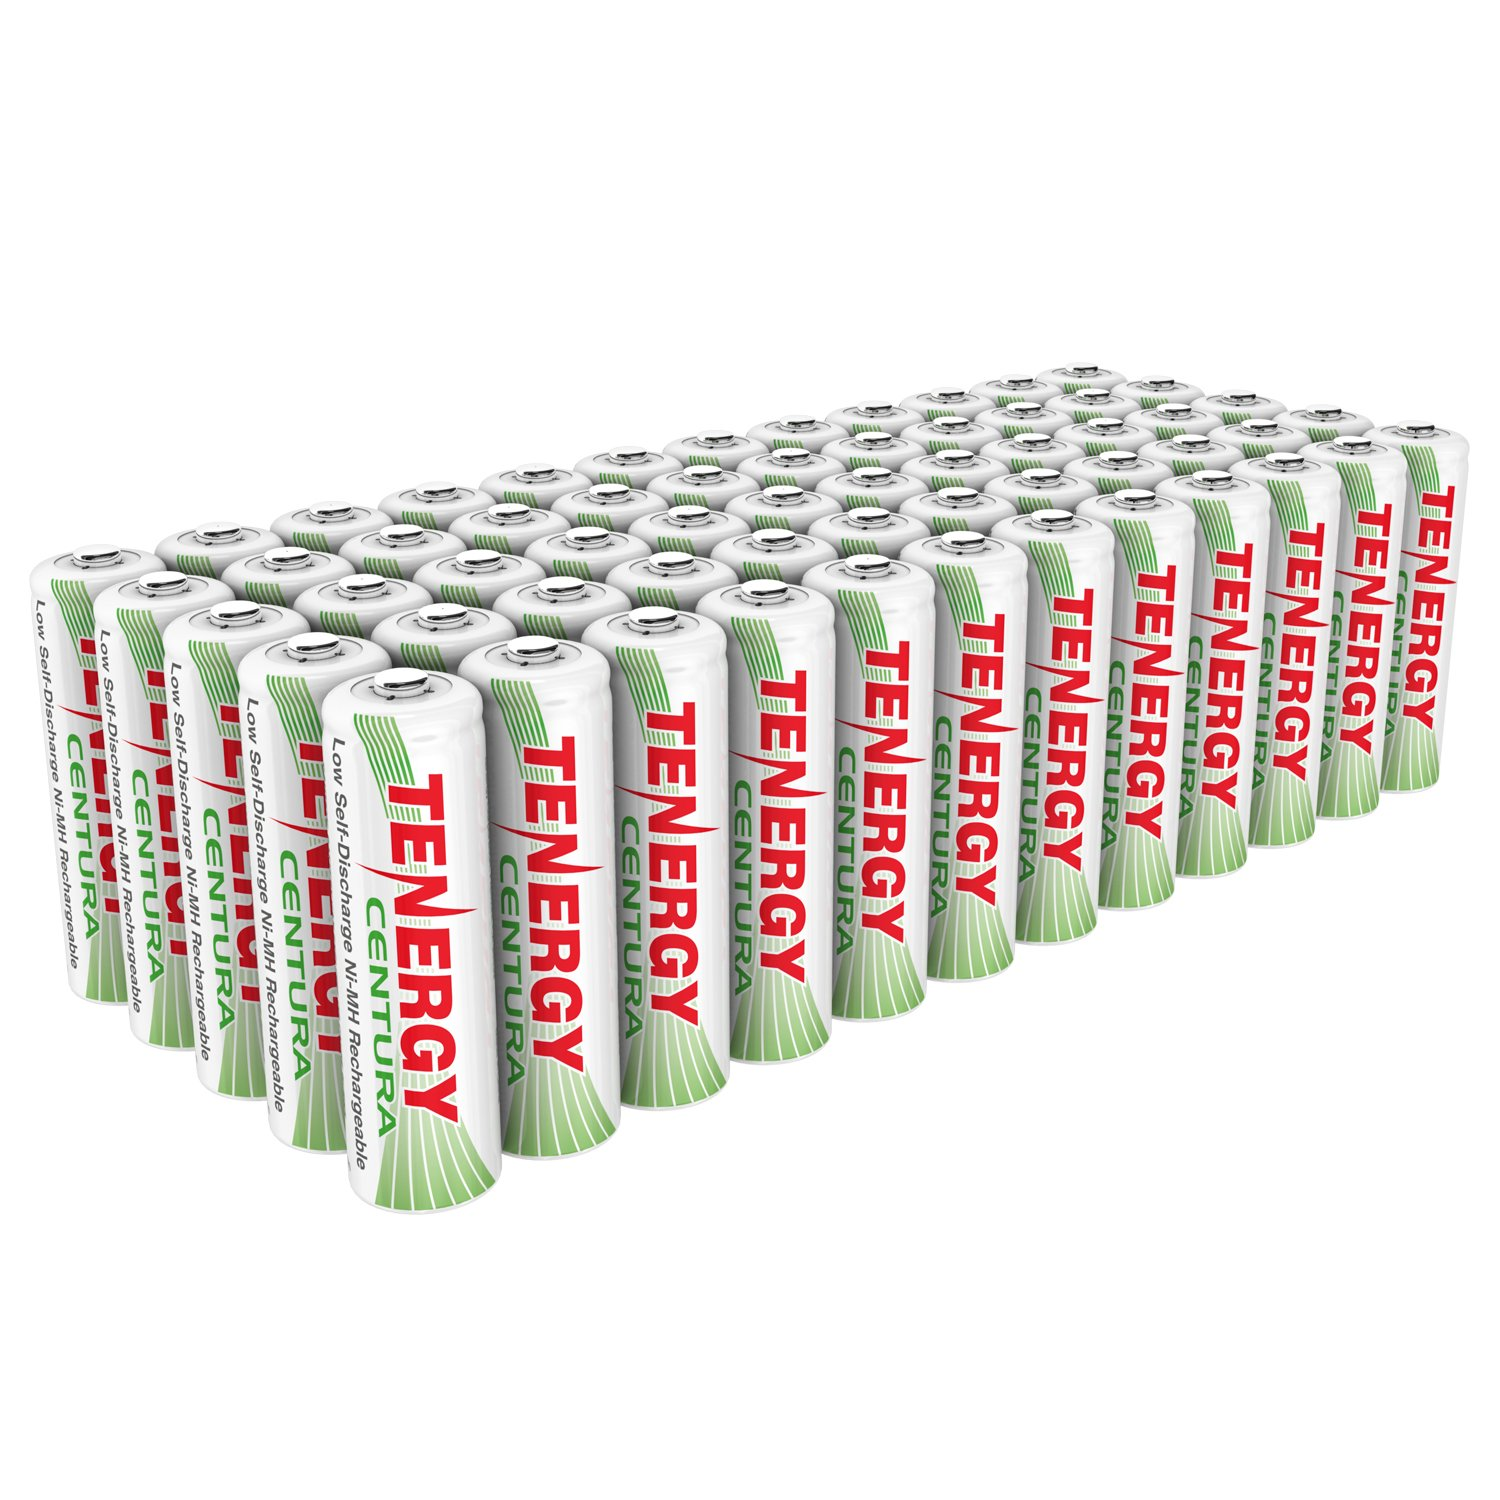 Tenergy AA Rechargeable NIMH Battery 2000mAh Pre-Charged Household Battery Low Self Discharge High Performance AA Battery Pack for Remote Controller/Toys/Flashlight/Mice (60 PCS) by Tenergy